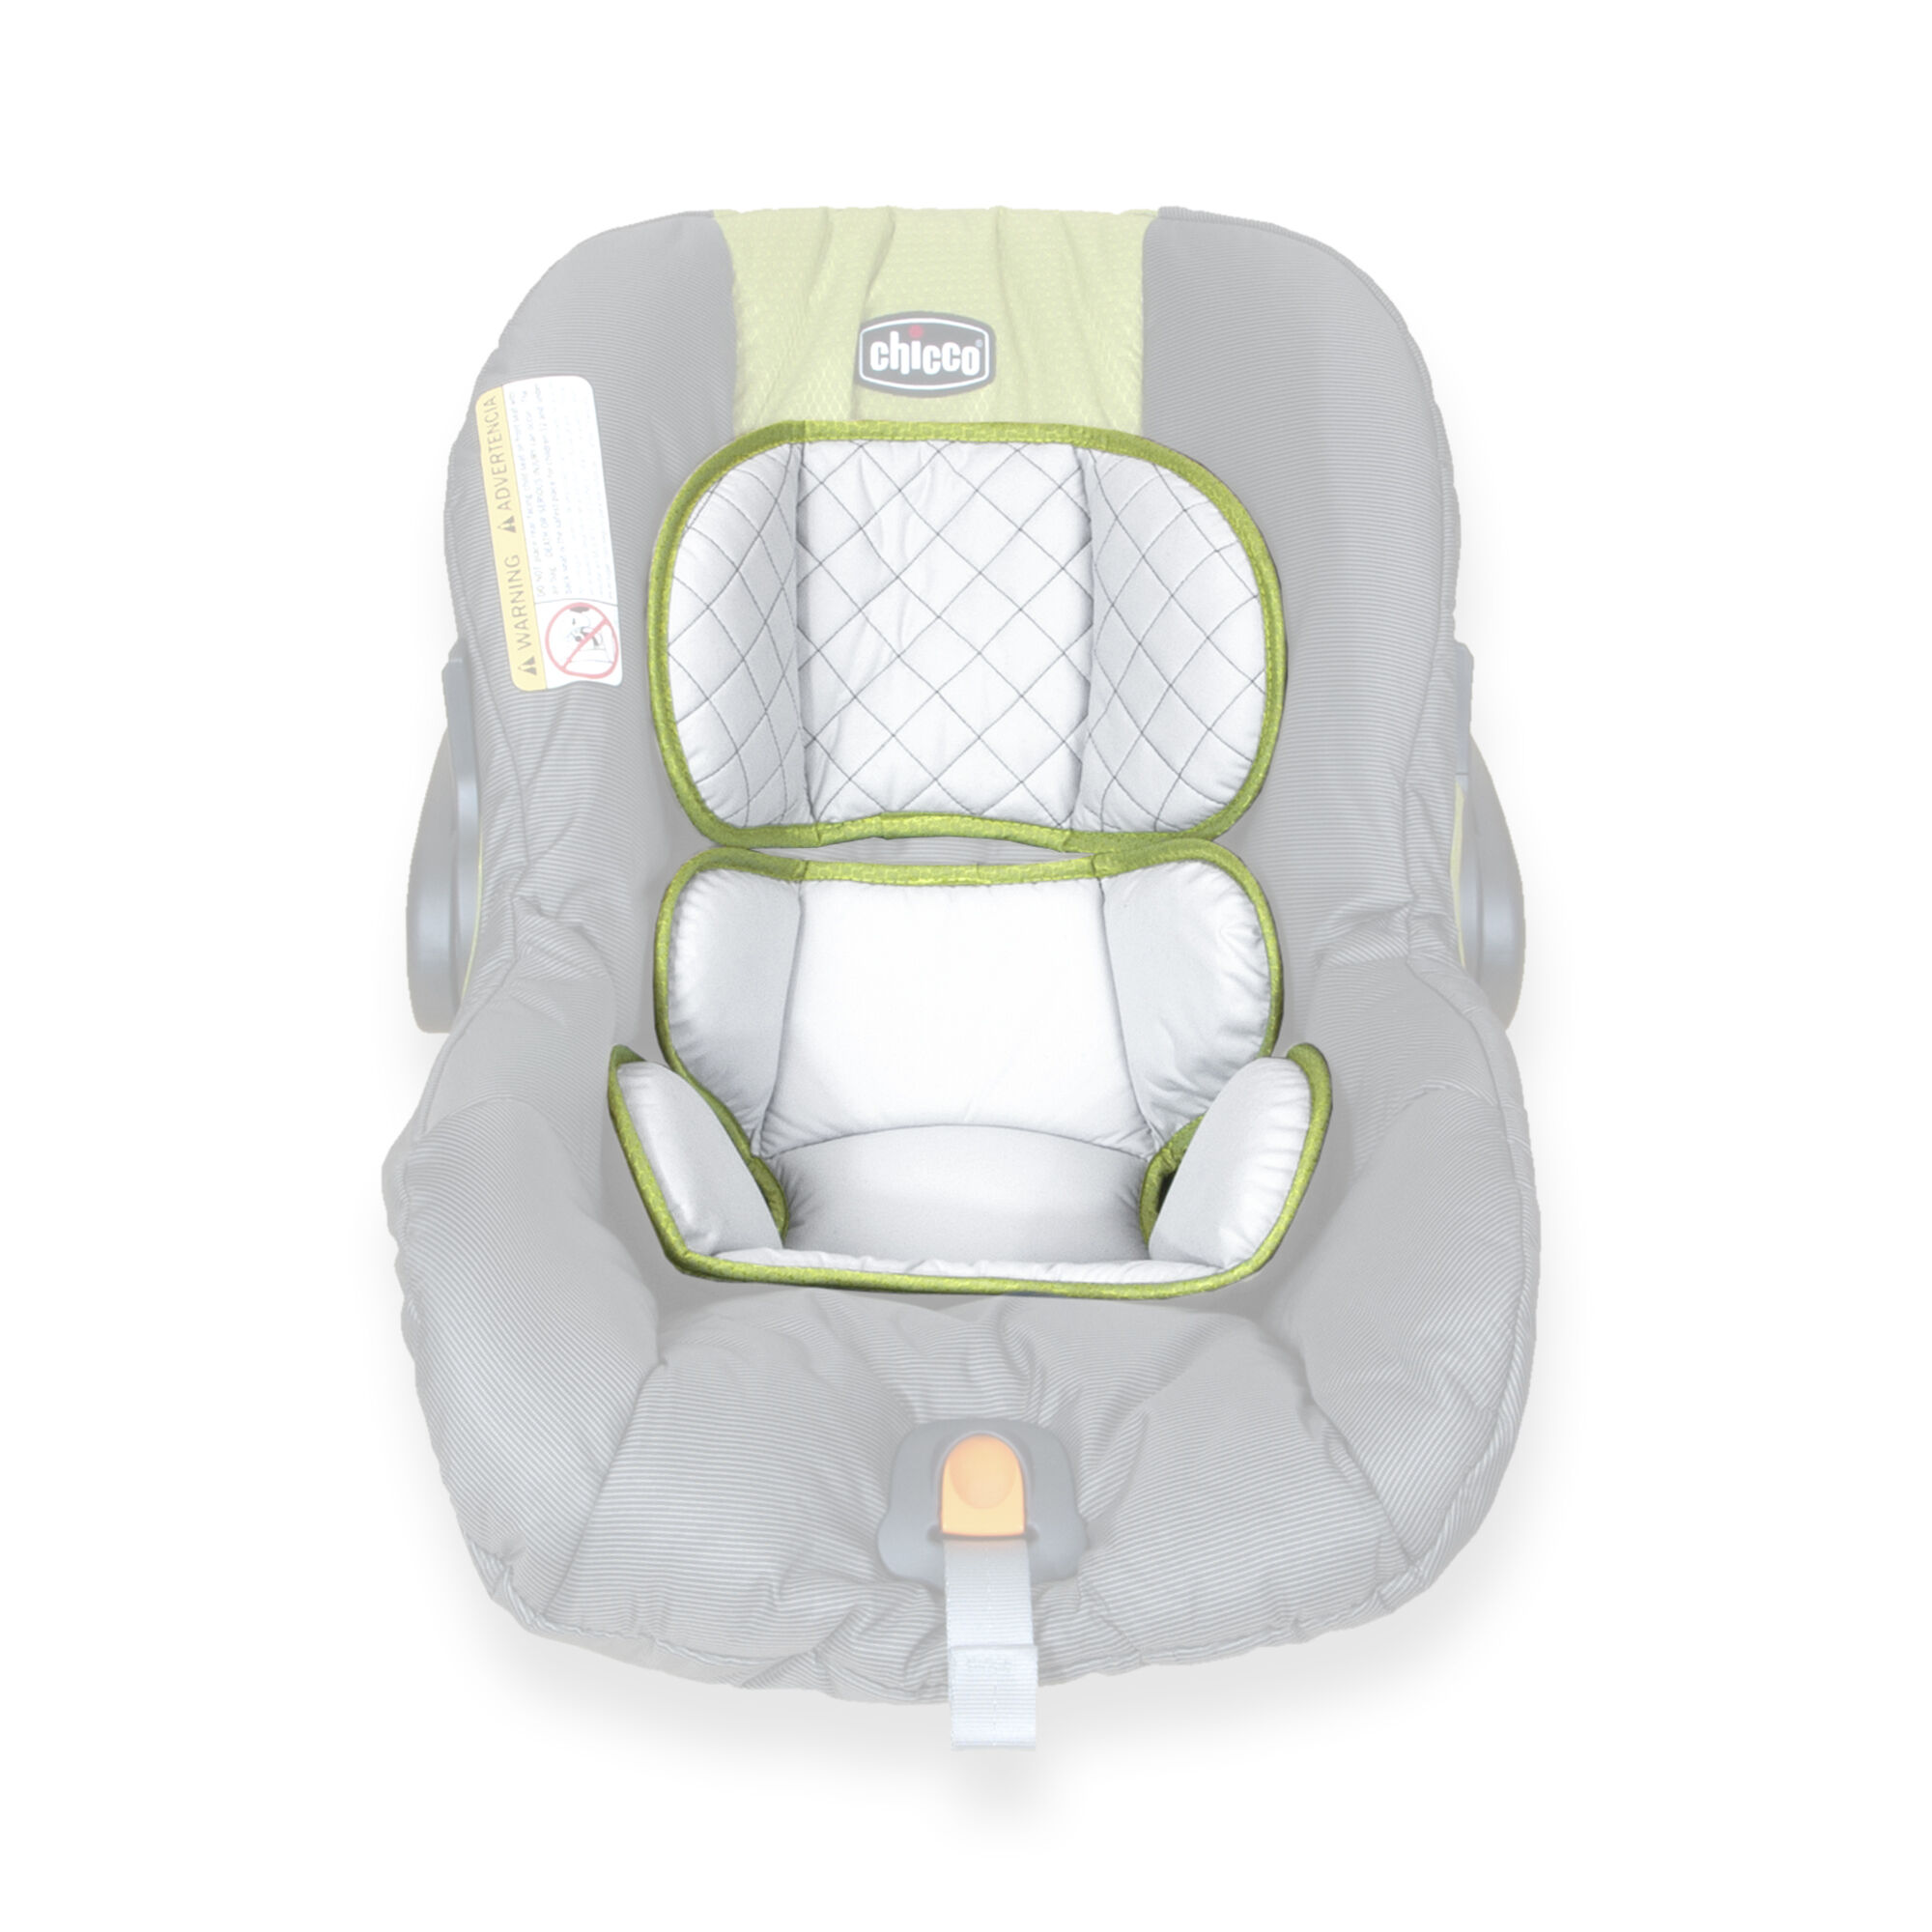 Image Result For Chicco Car Seat Infant Insert Replacement